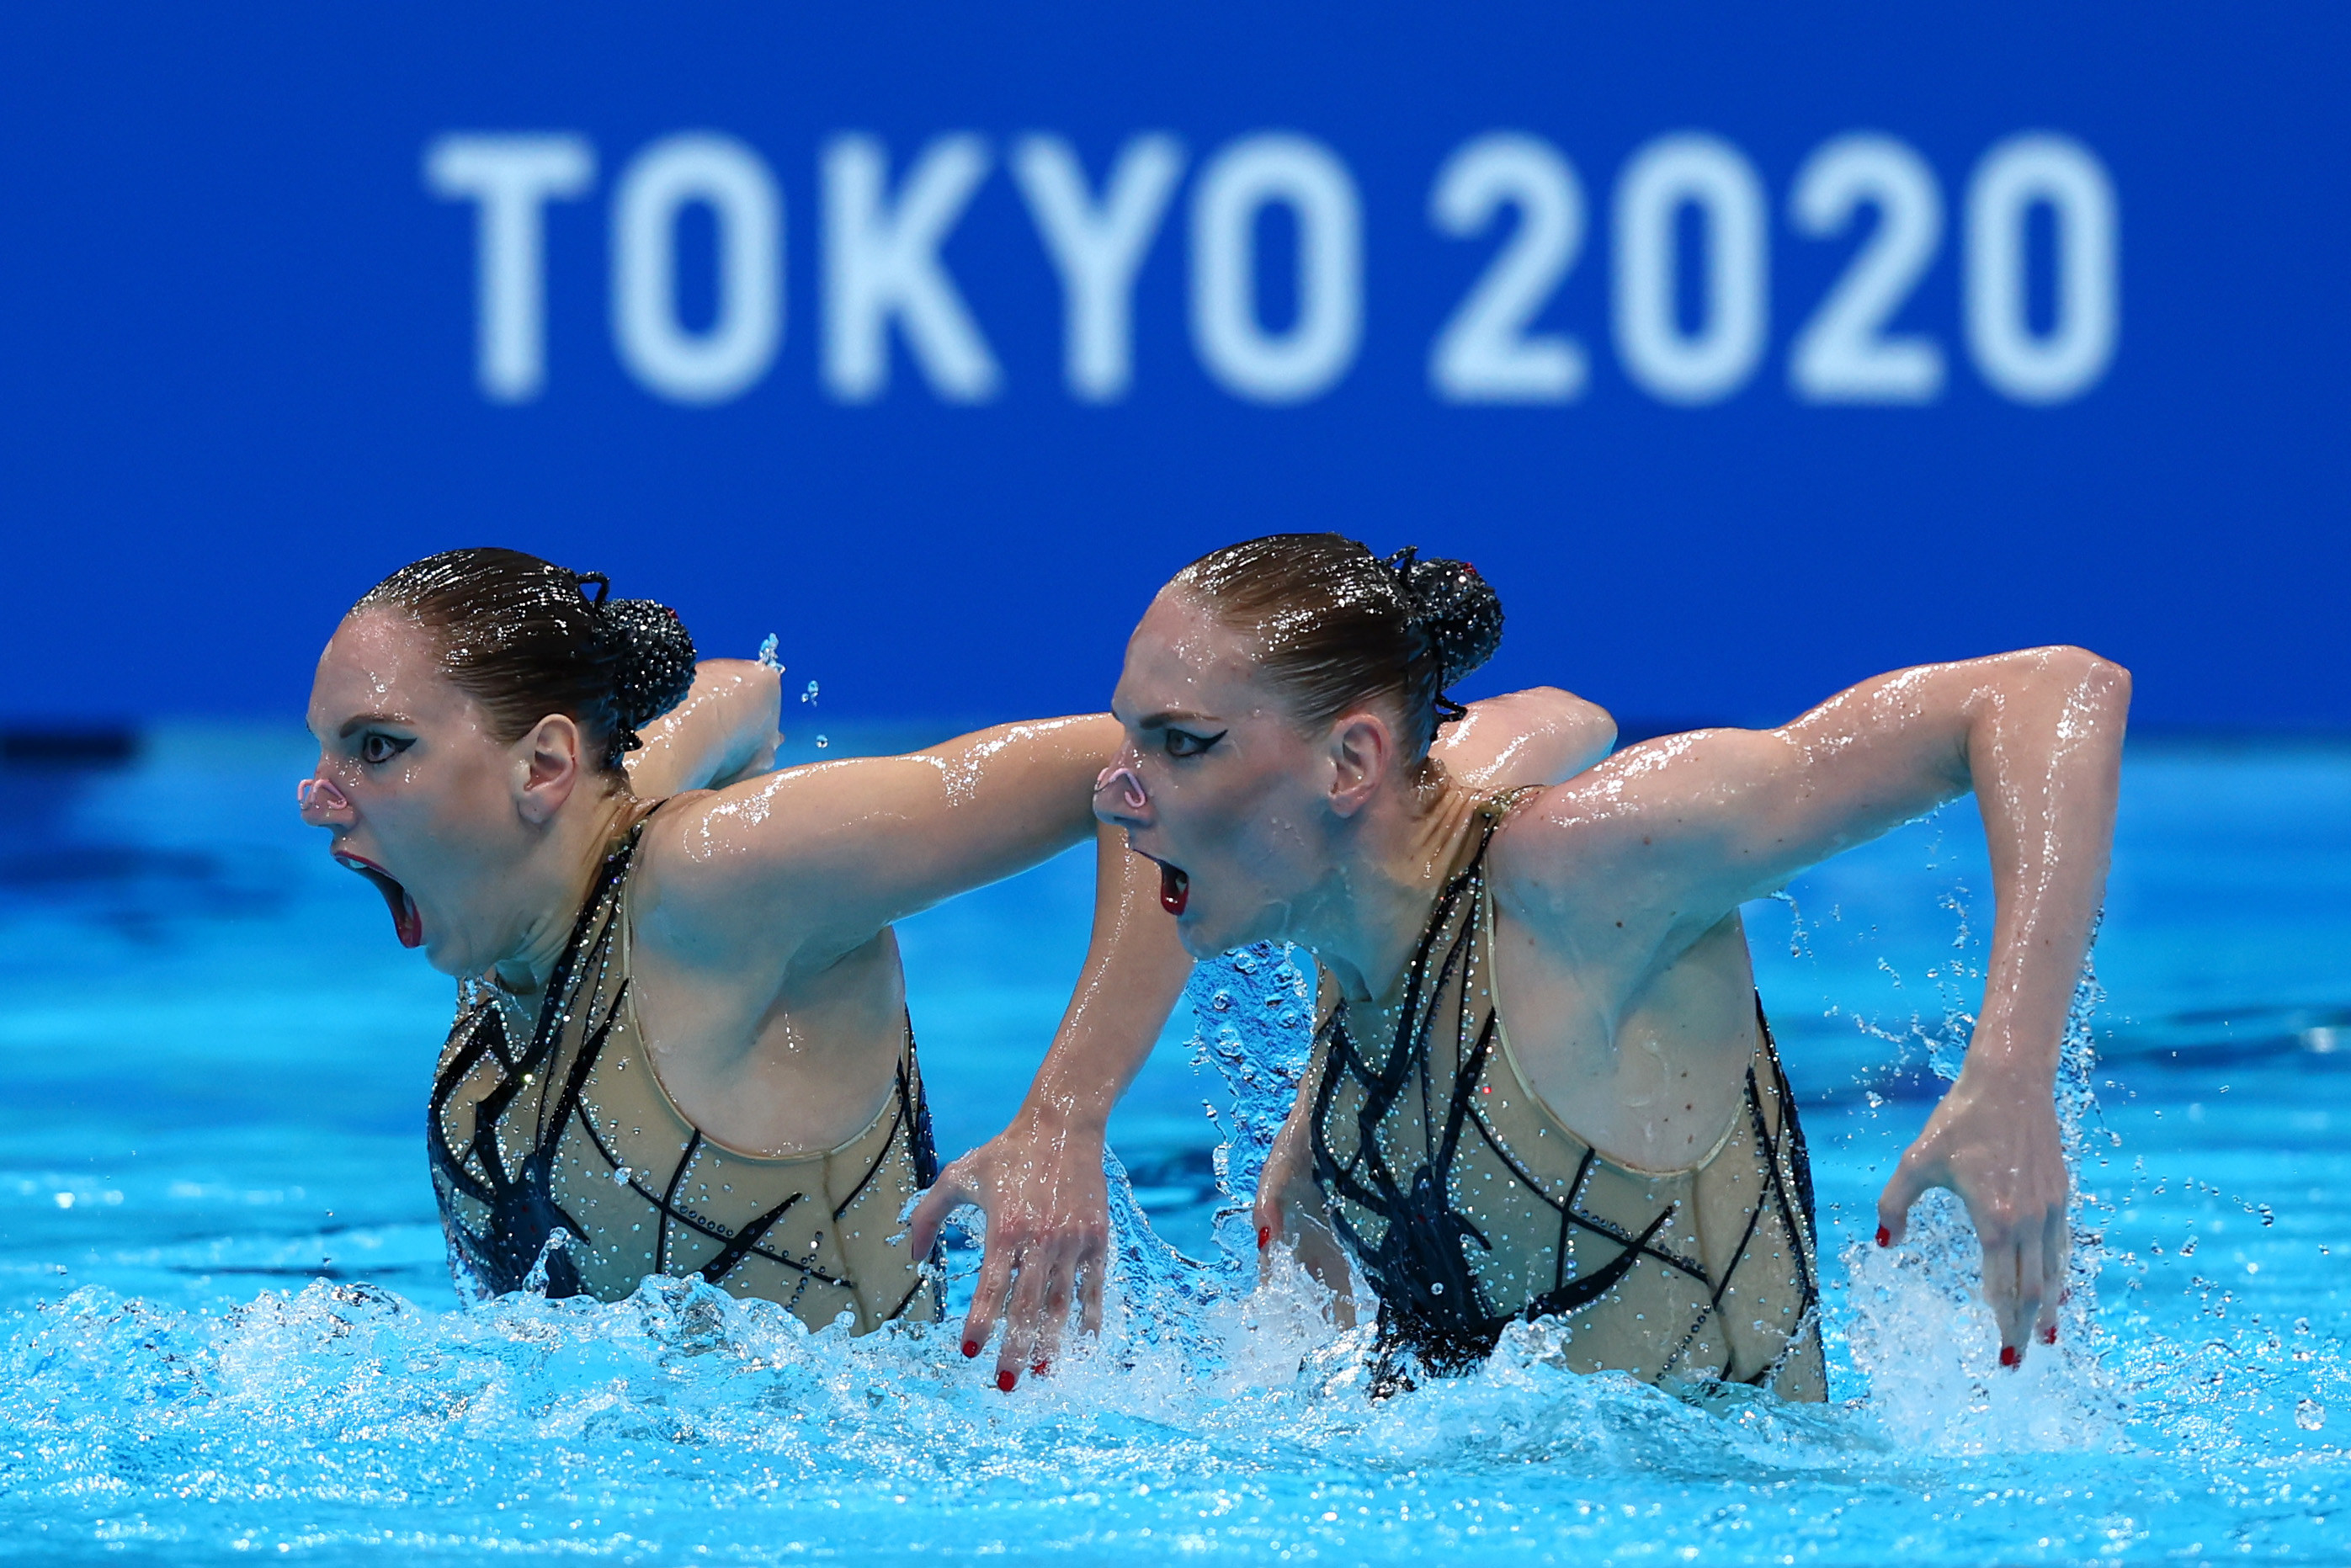 Two swimmers stand side by side with their arms out behind them